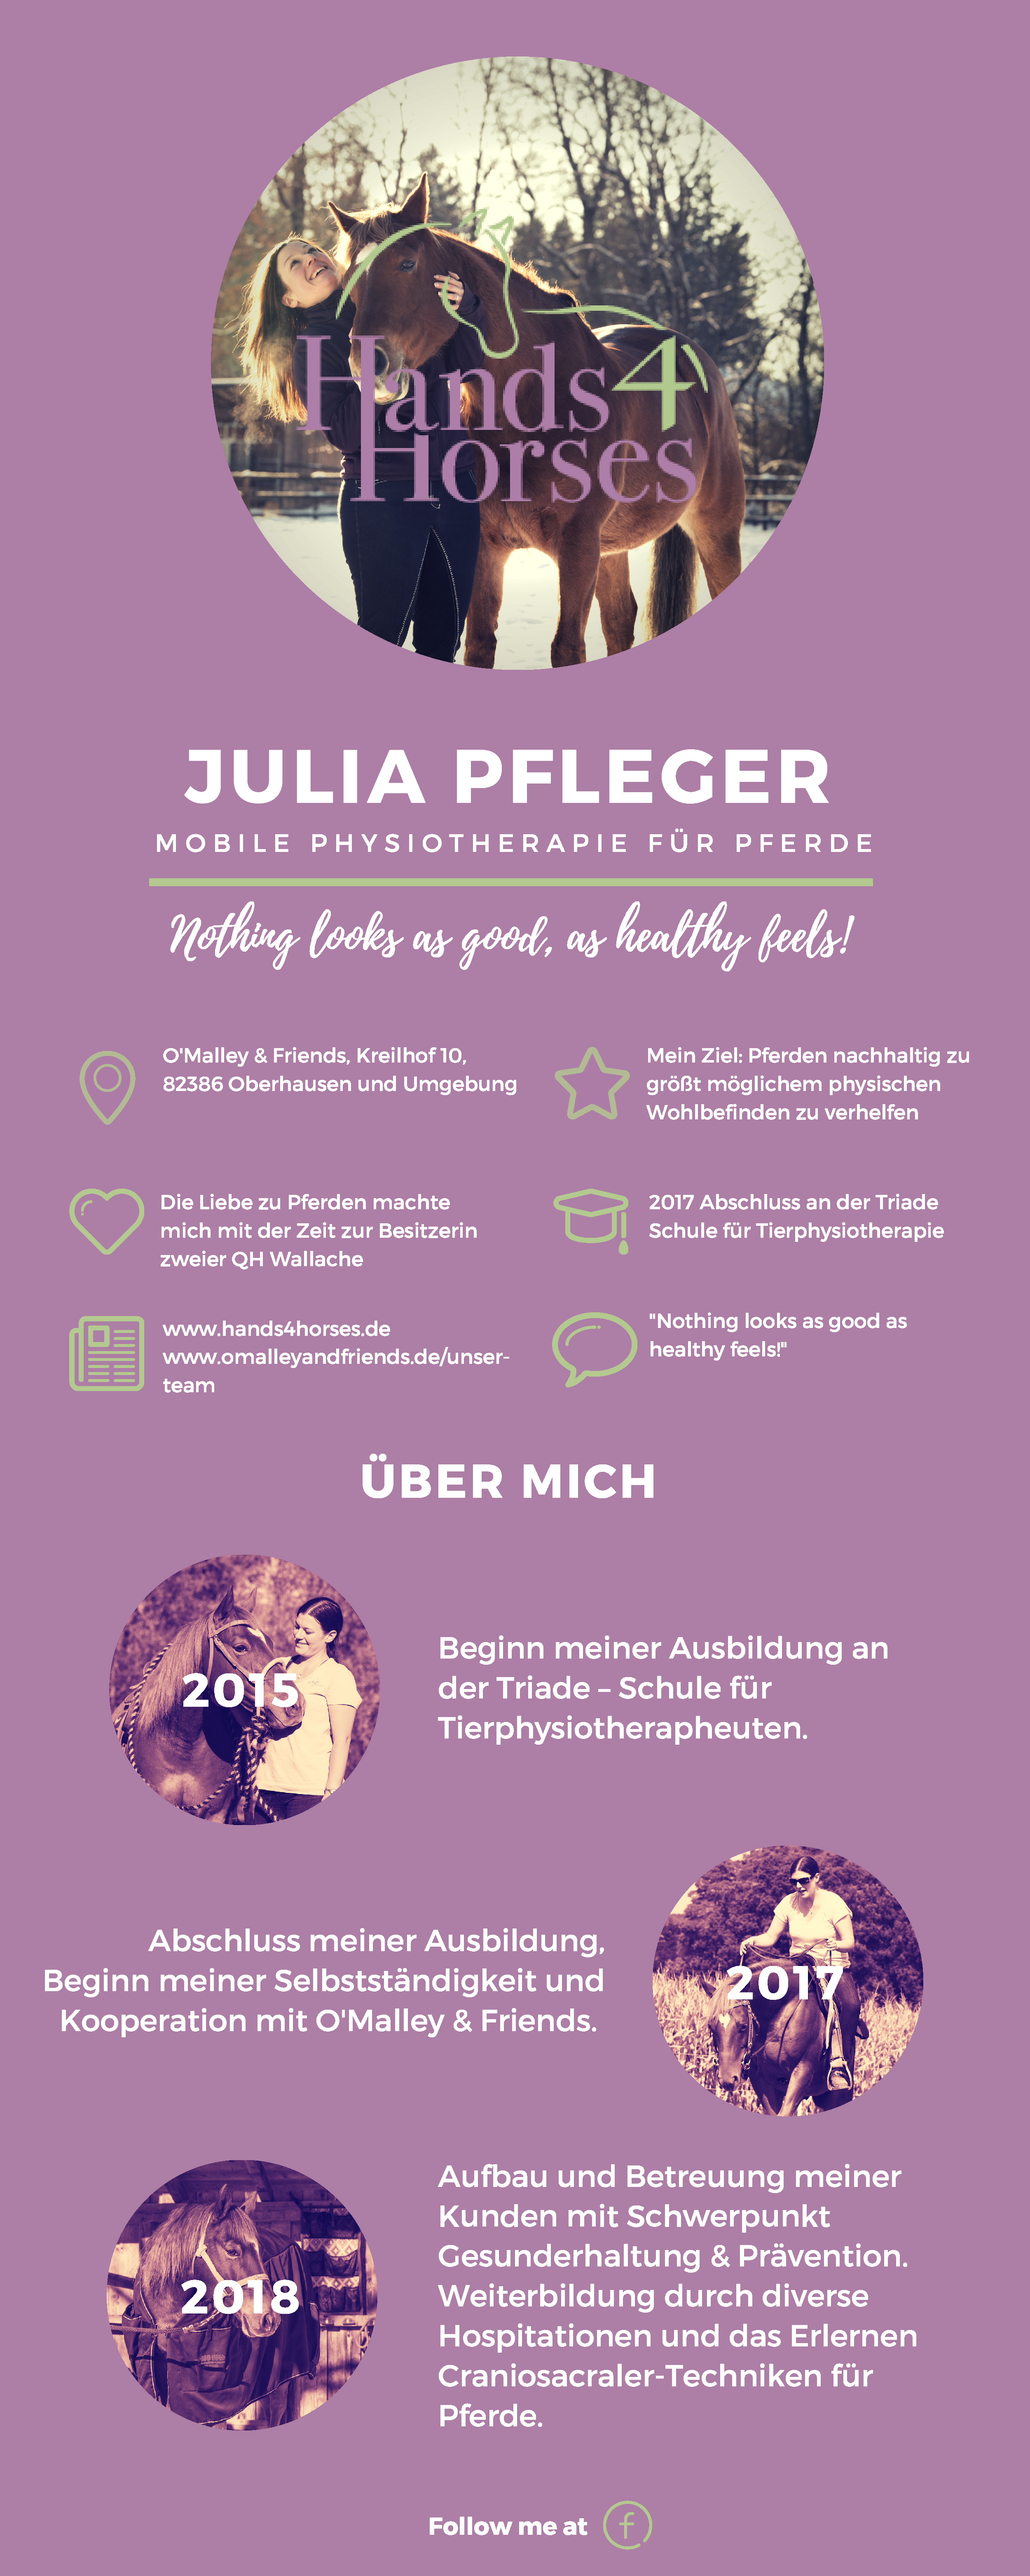 Julia_Pfleger_mobilie_physiotherapeutin_fuer_Pferde